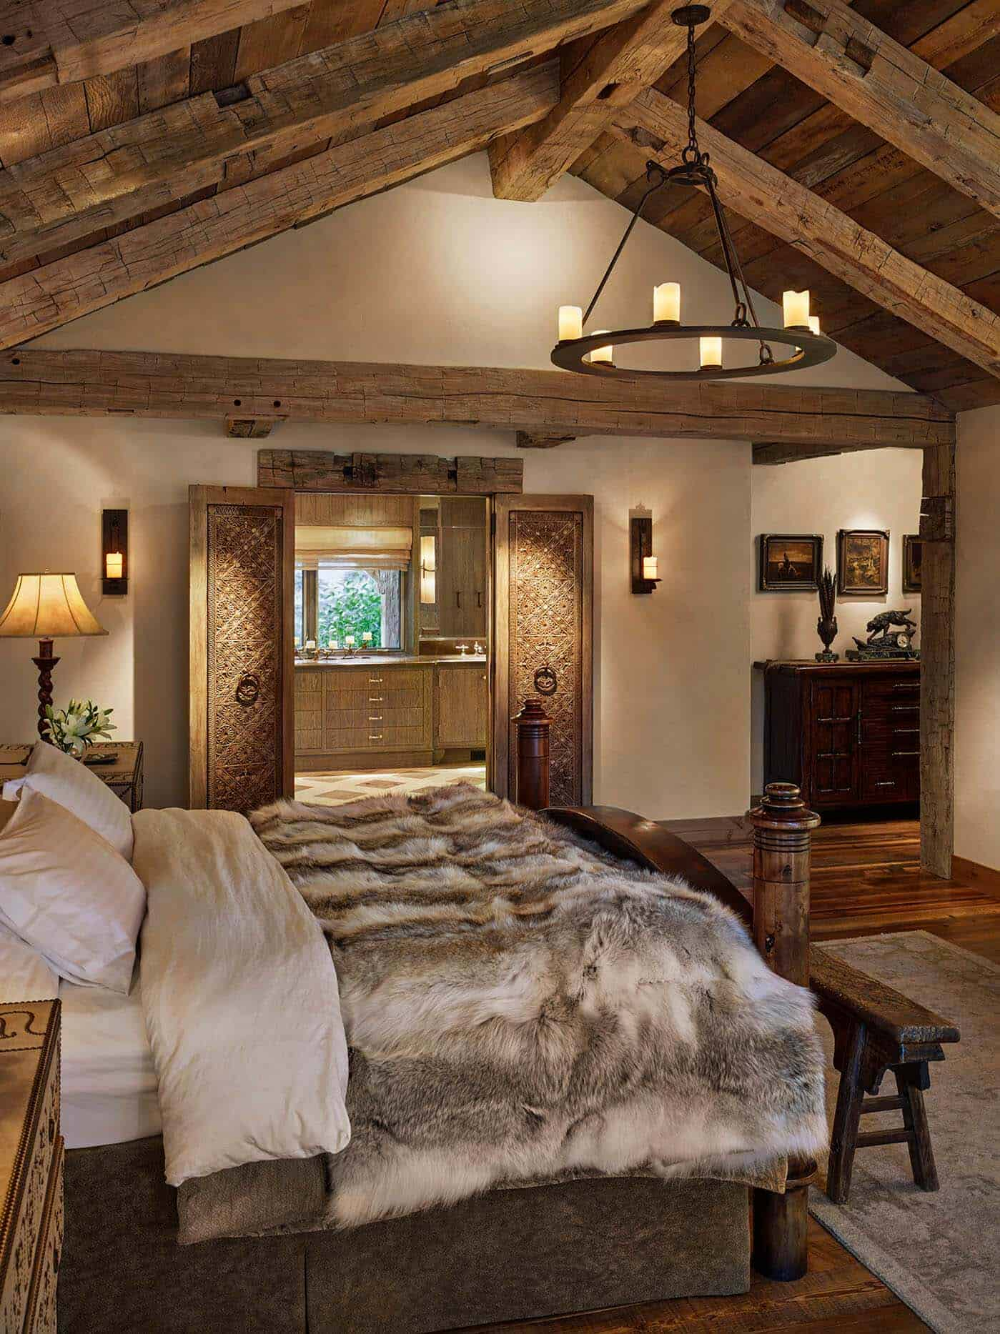 Breathtaking rustic ranch house tucked into the Beartooth Mountains